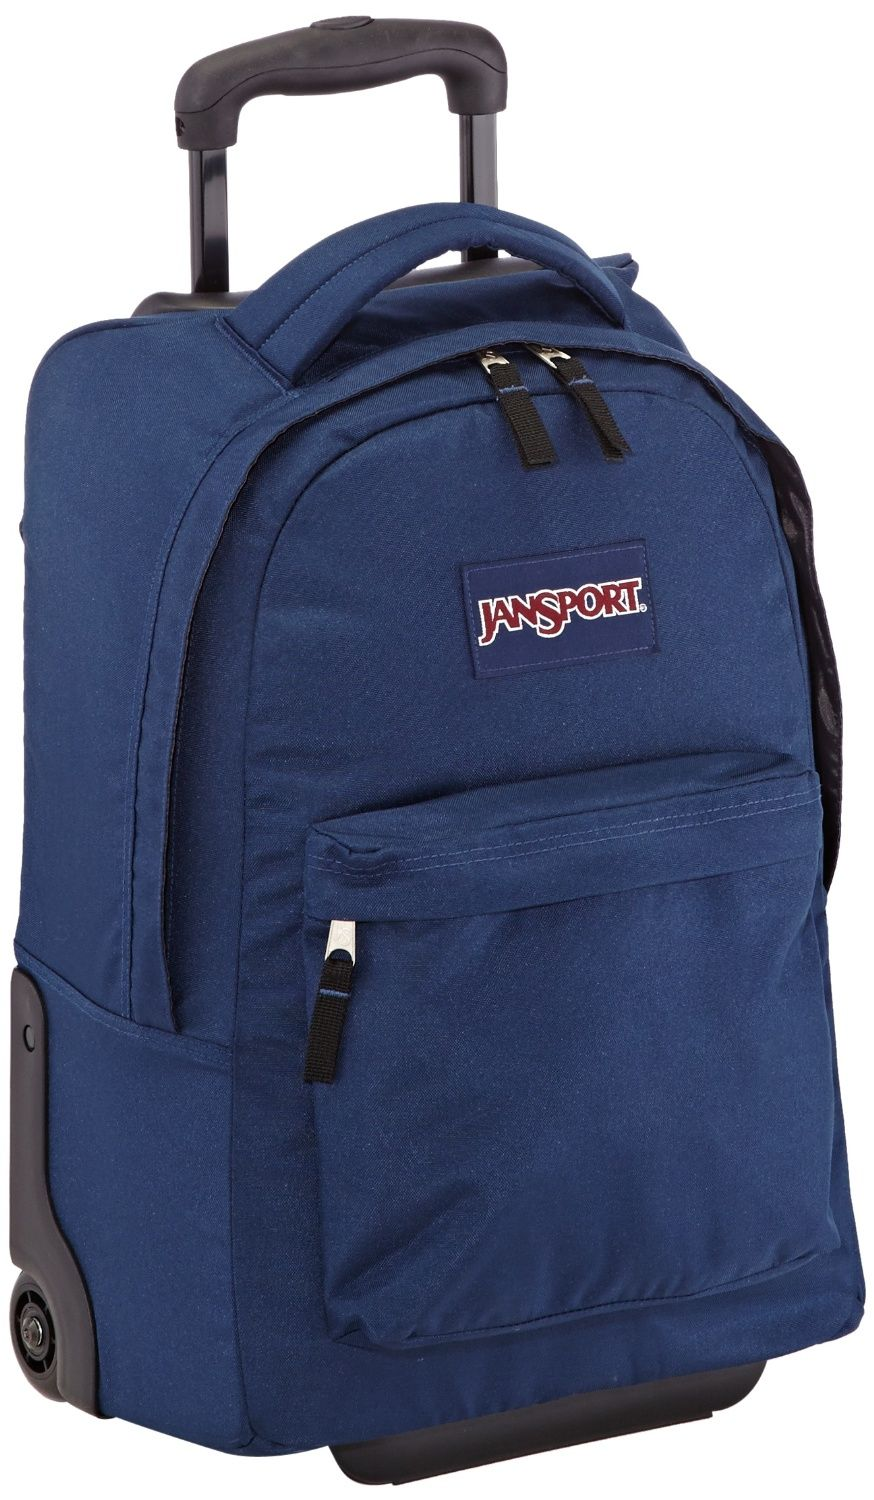 a8bfd0499f51 Rolling backpacks for teenage girls and boys. Jansport Superbreak Wheeled  Backpack - Navy. Perfect for weekend travel.